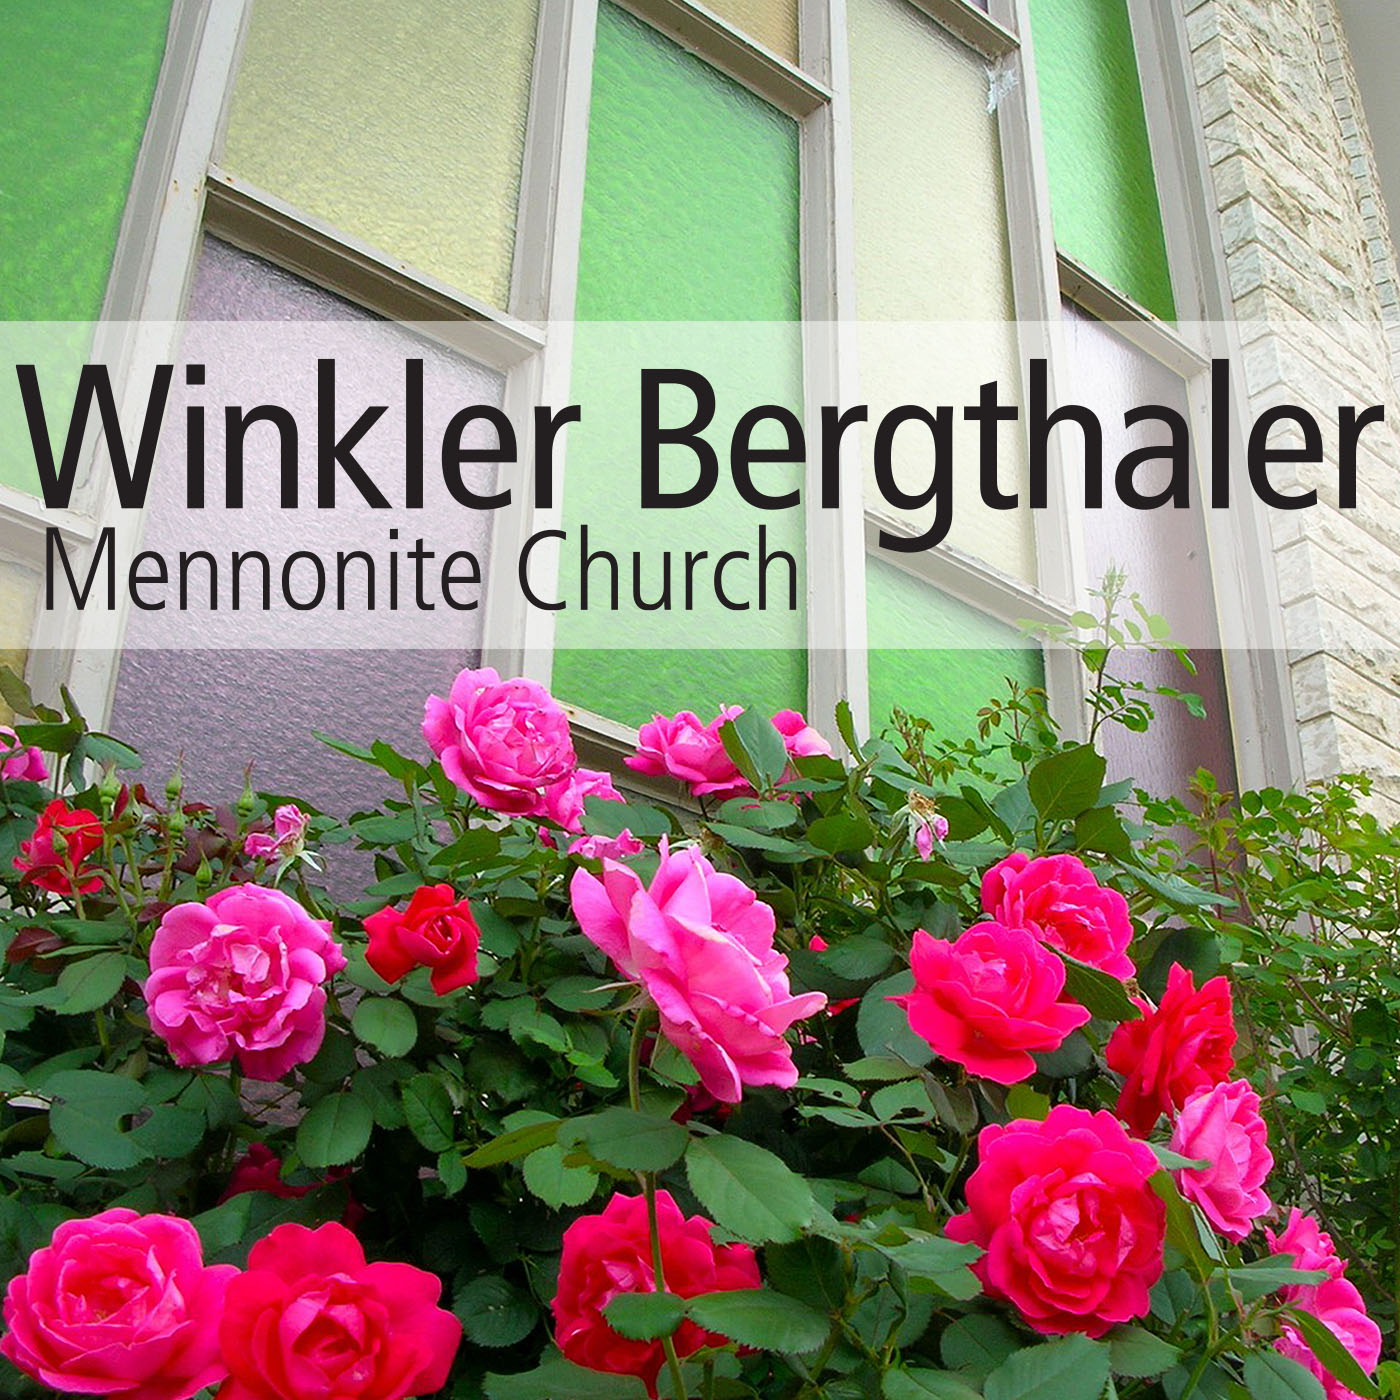 Winkler Bergthaler Mennonite Church